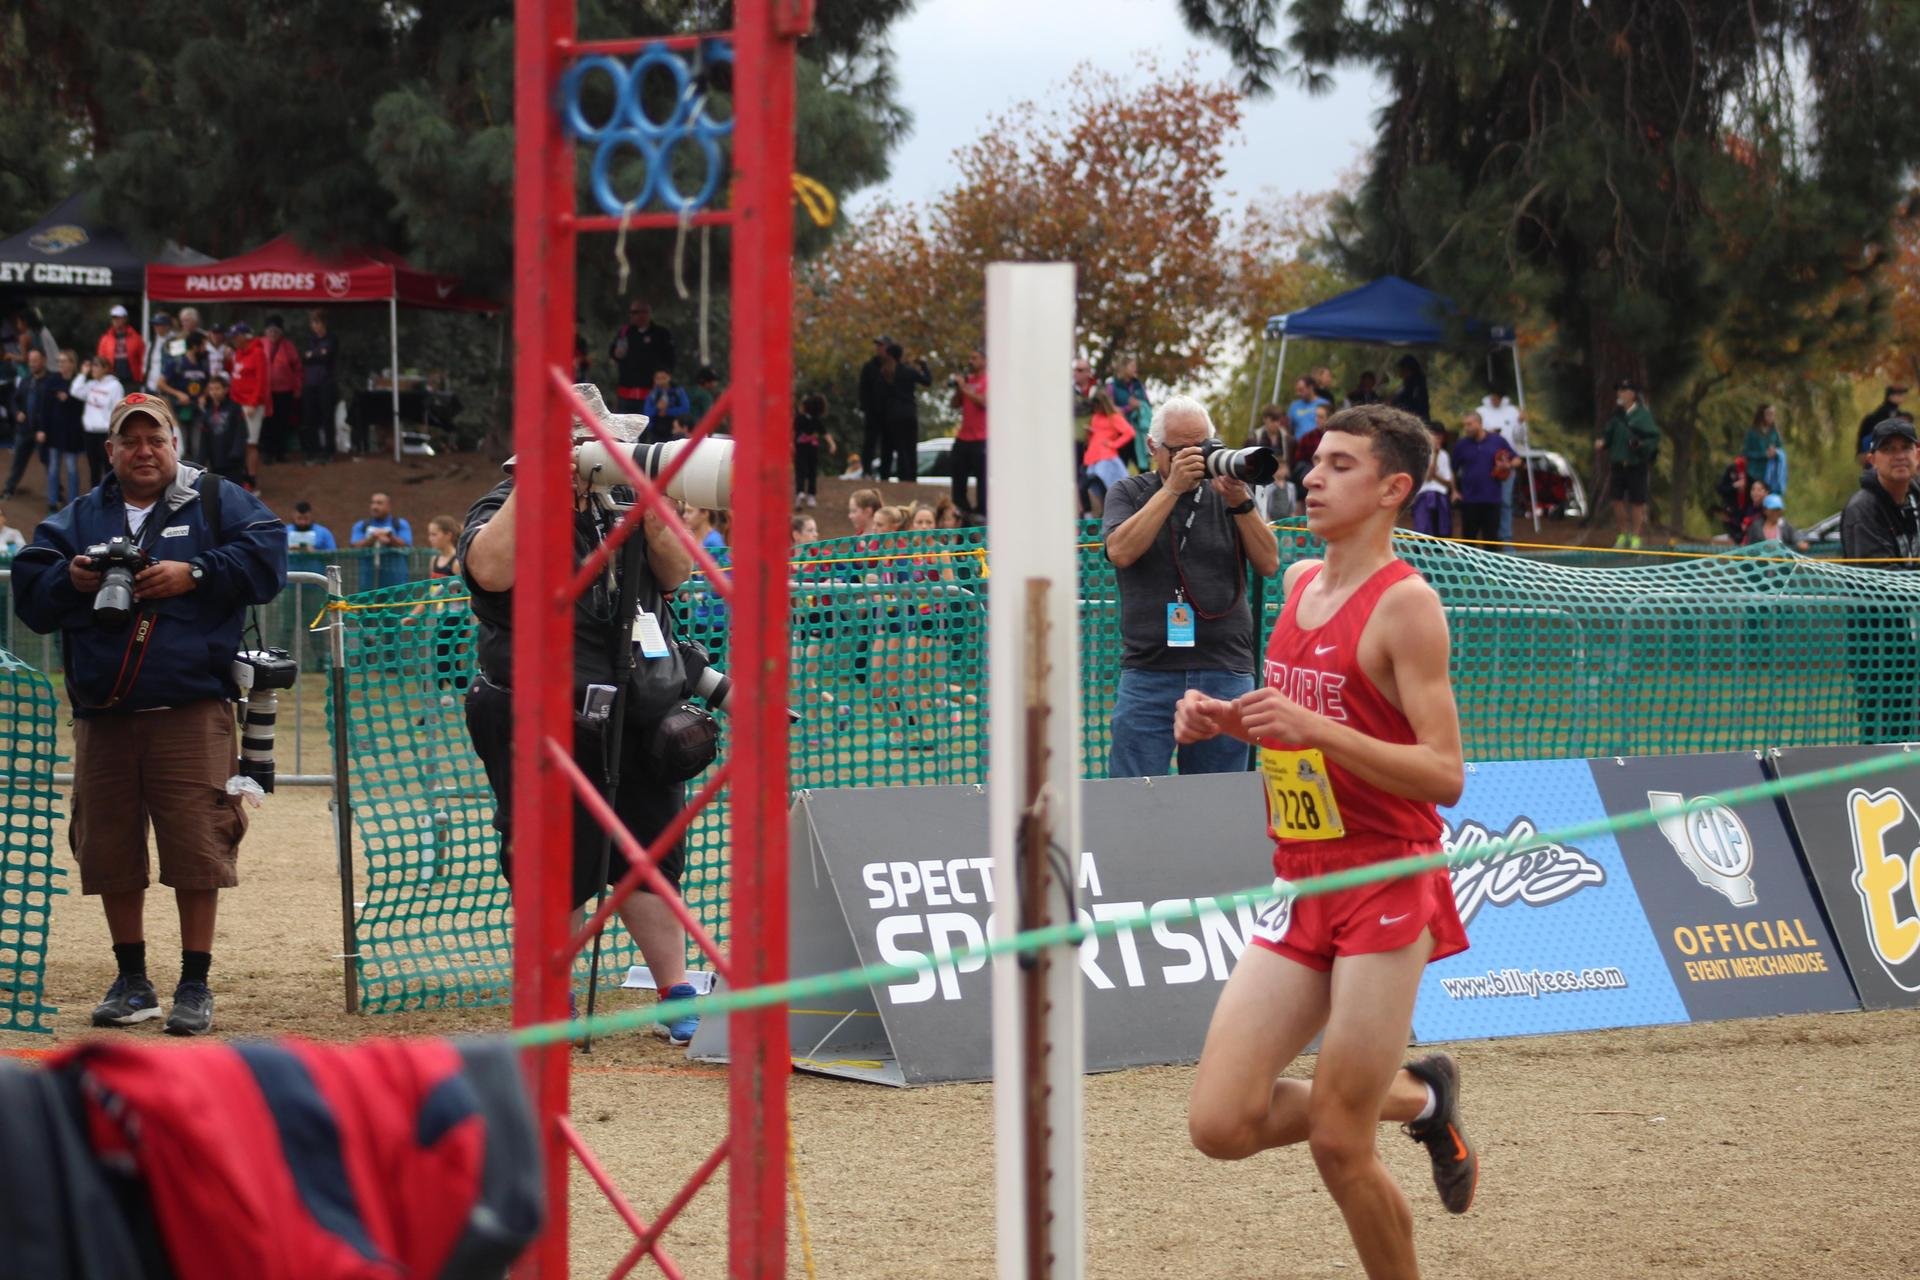 Chowchilla High School athletes running at the State Meet.